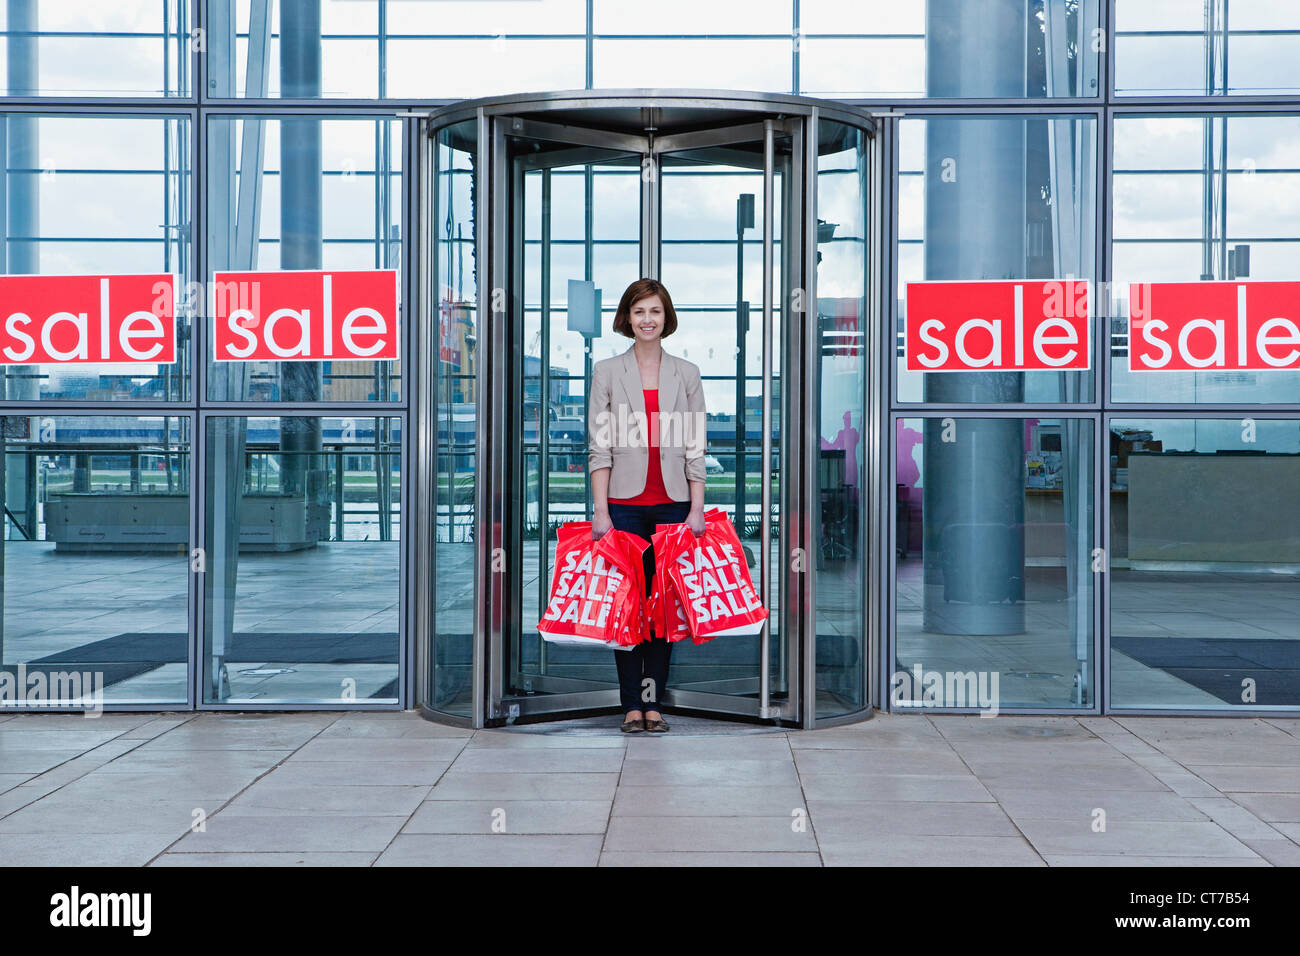 Woman in shop doorway with sale bags - Stock Image